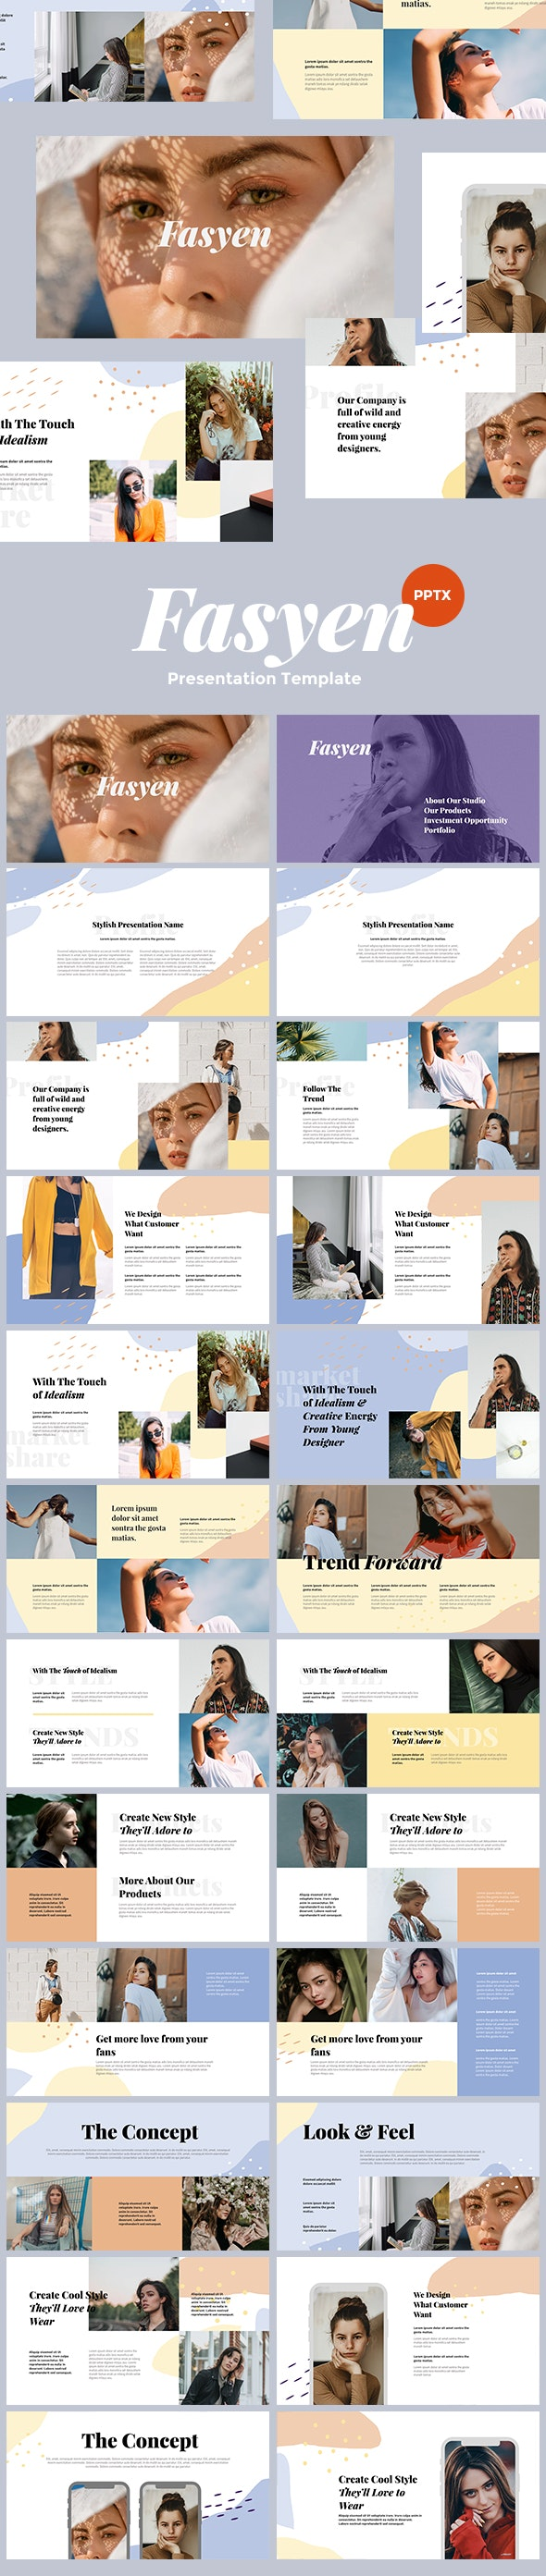 Fasyen - Powerpoint Template Presentation - PowerPoint Templates Presentation Templates